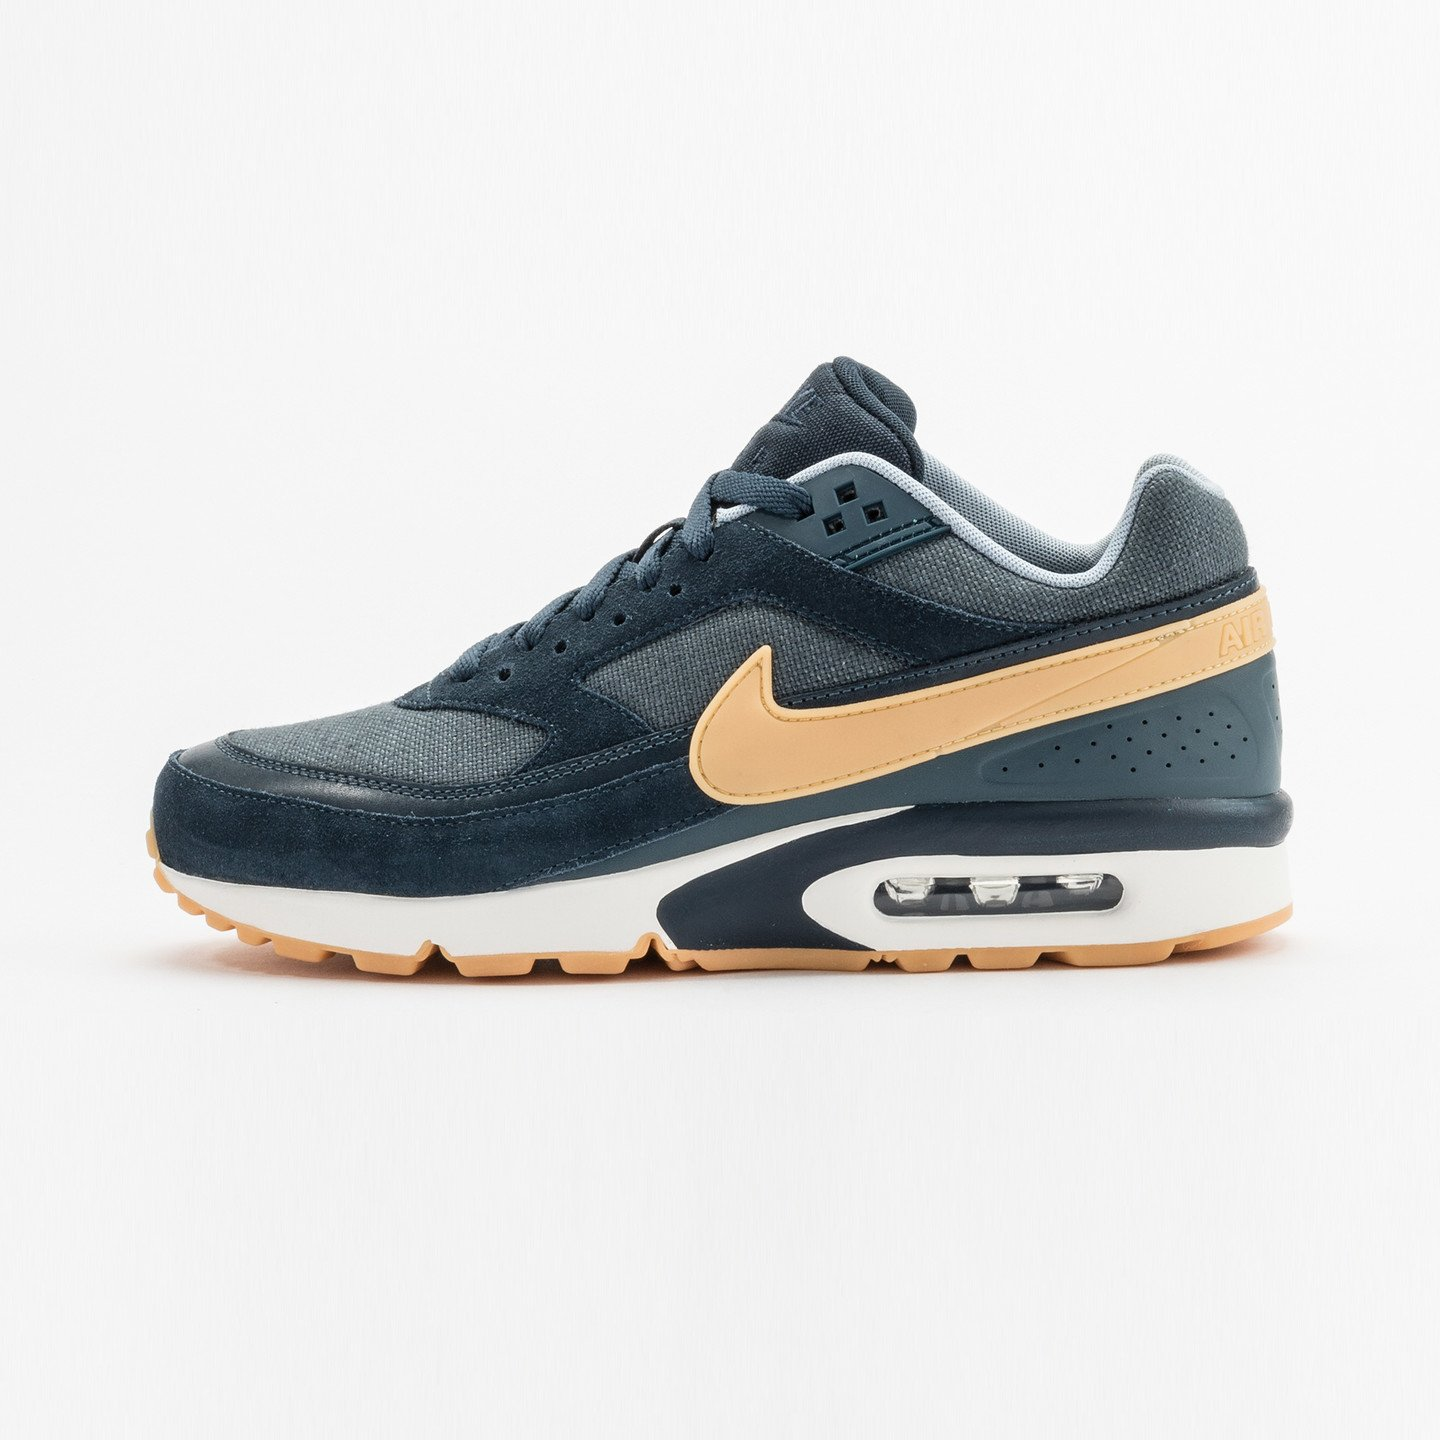 Nike Air Max BW Premium Armory Navy / Yellow / Gum 819523-401-44